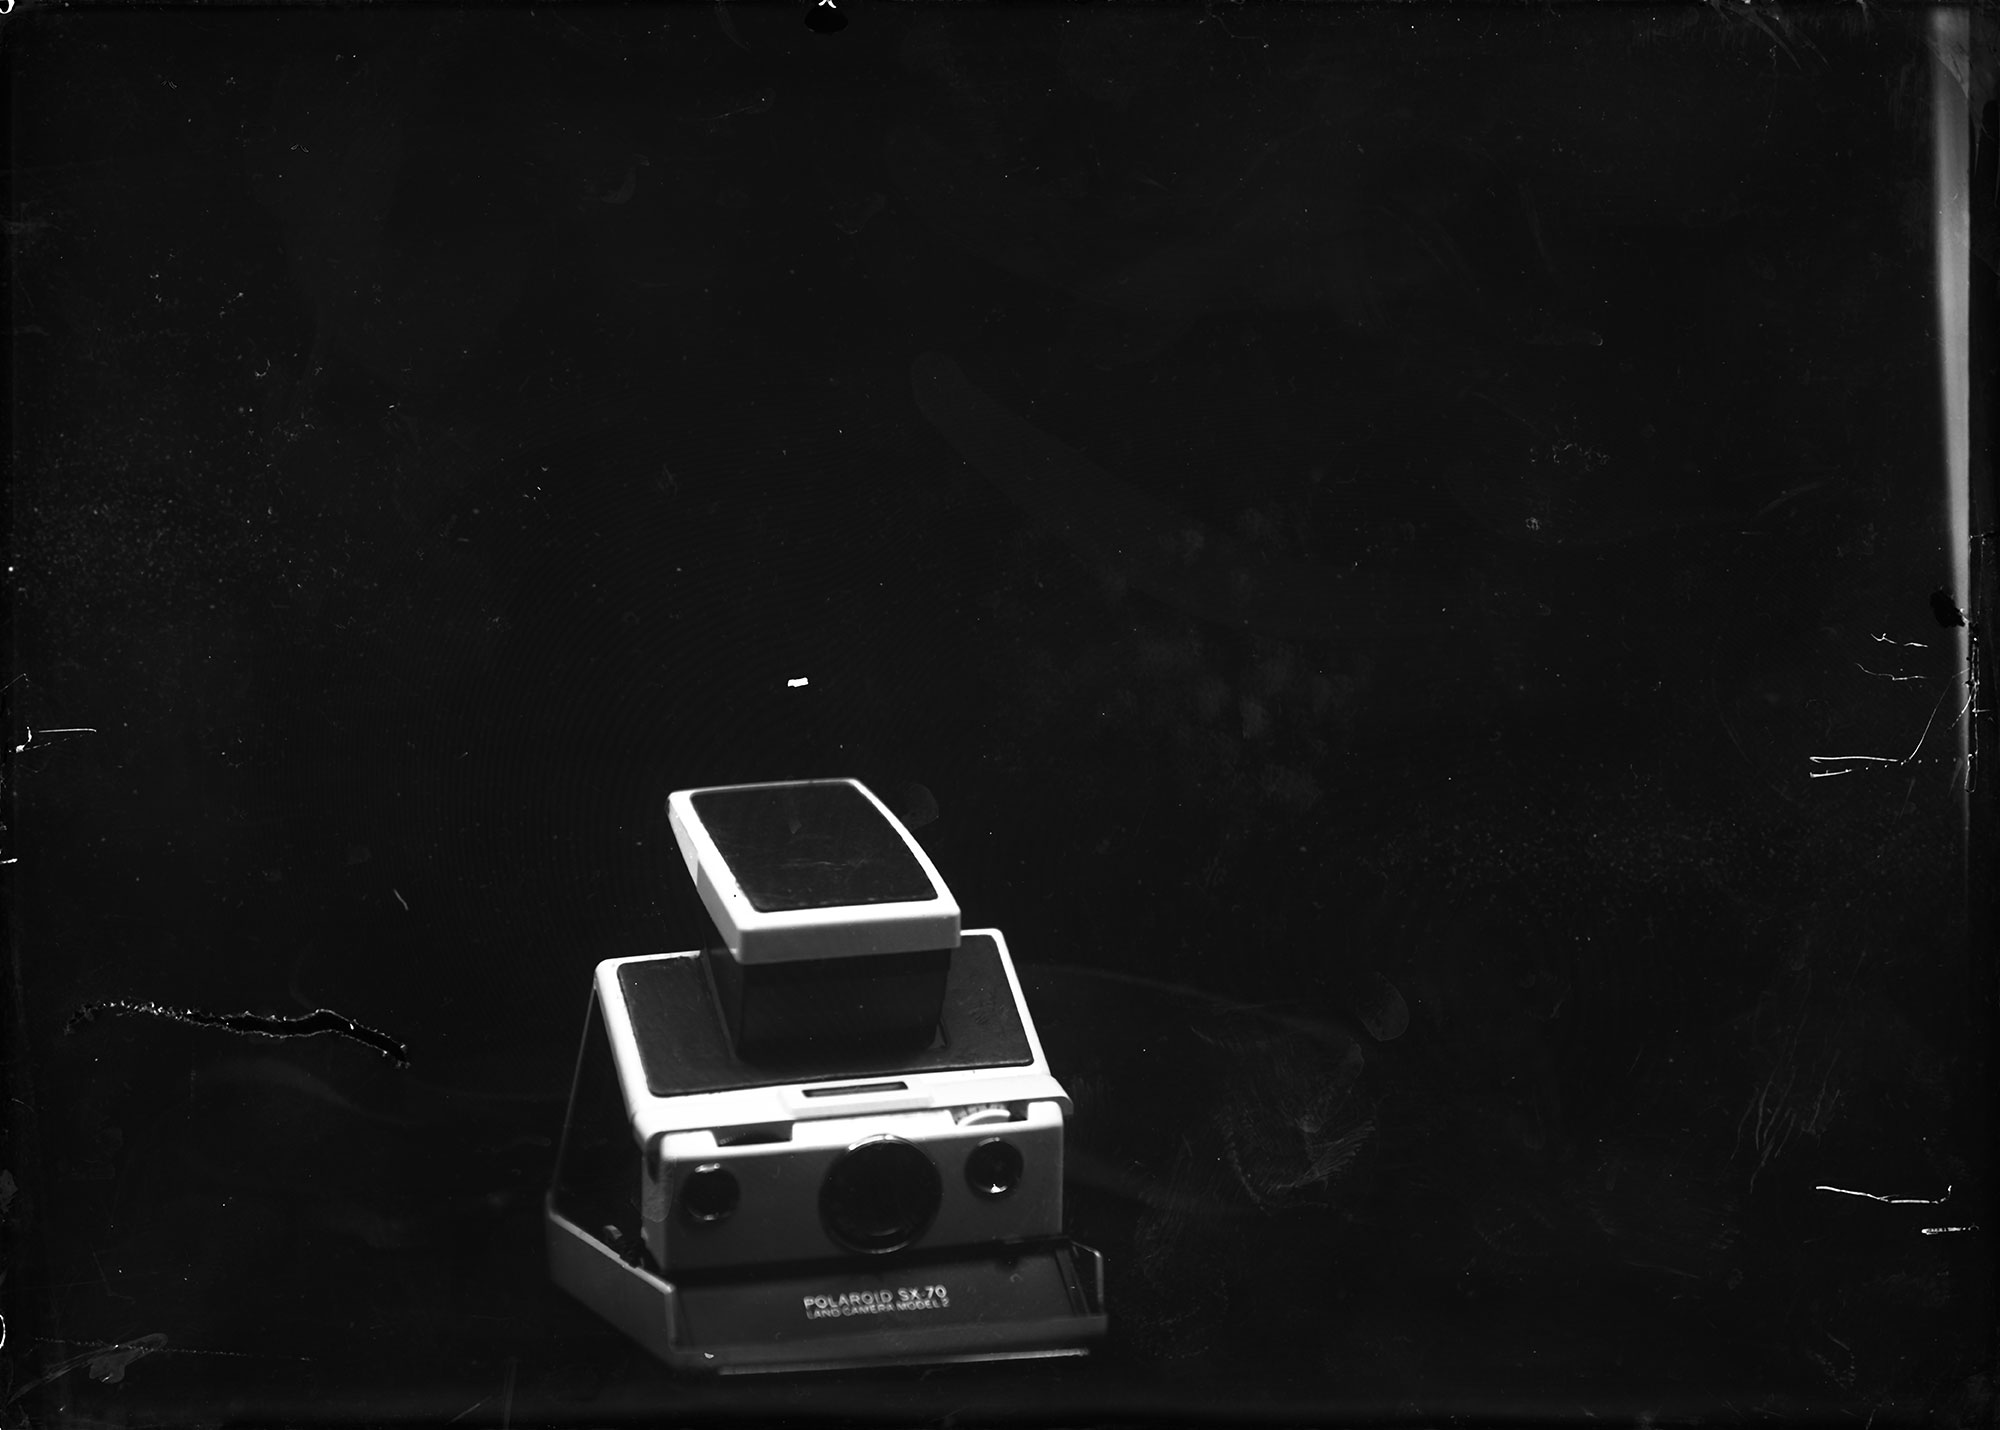 dry plate shot of a Polaroid SX-70 camera